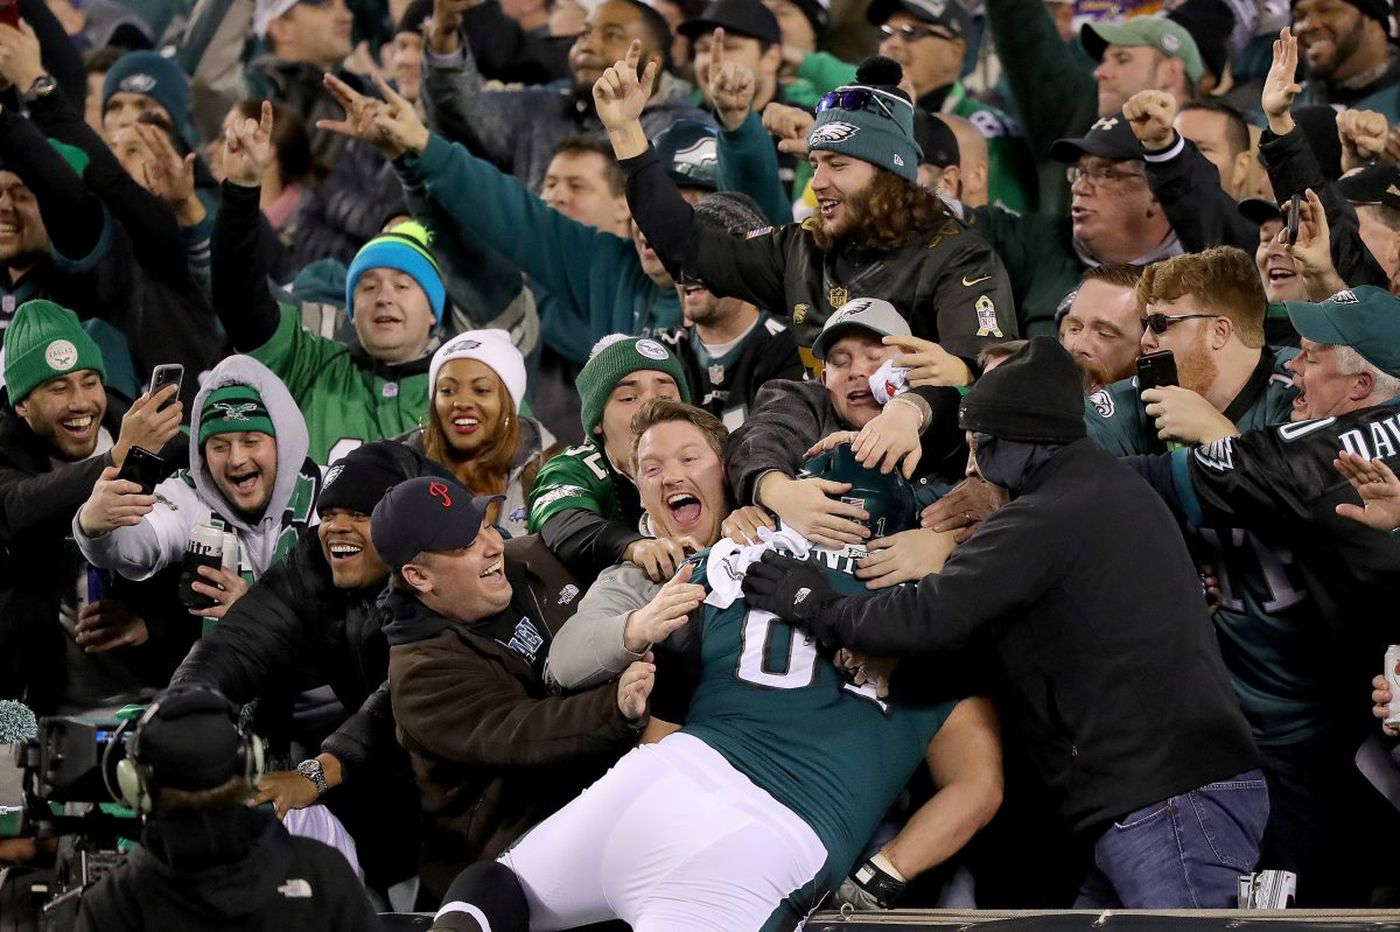 Suddenly the Philadelphia Eagles are America's sweethearts